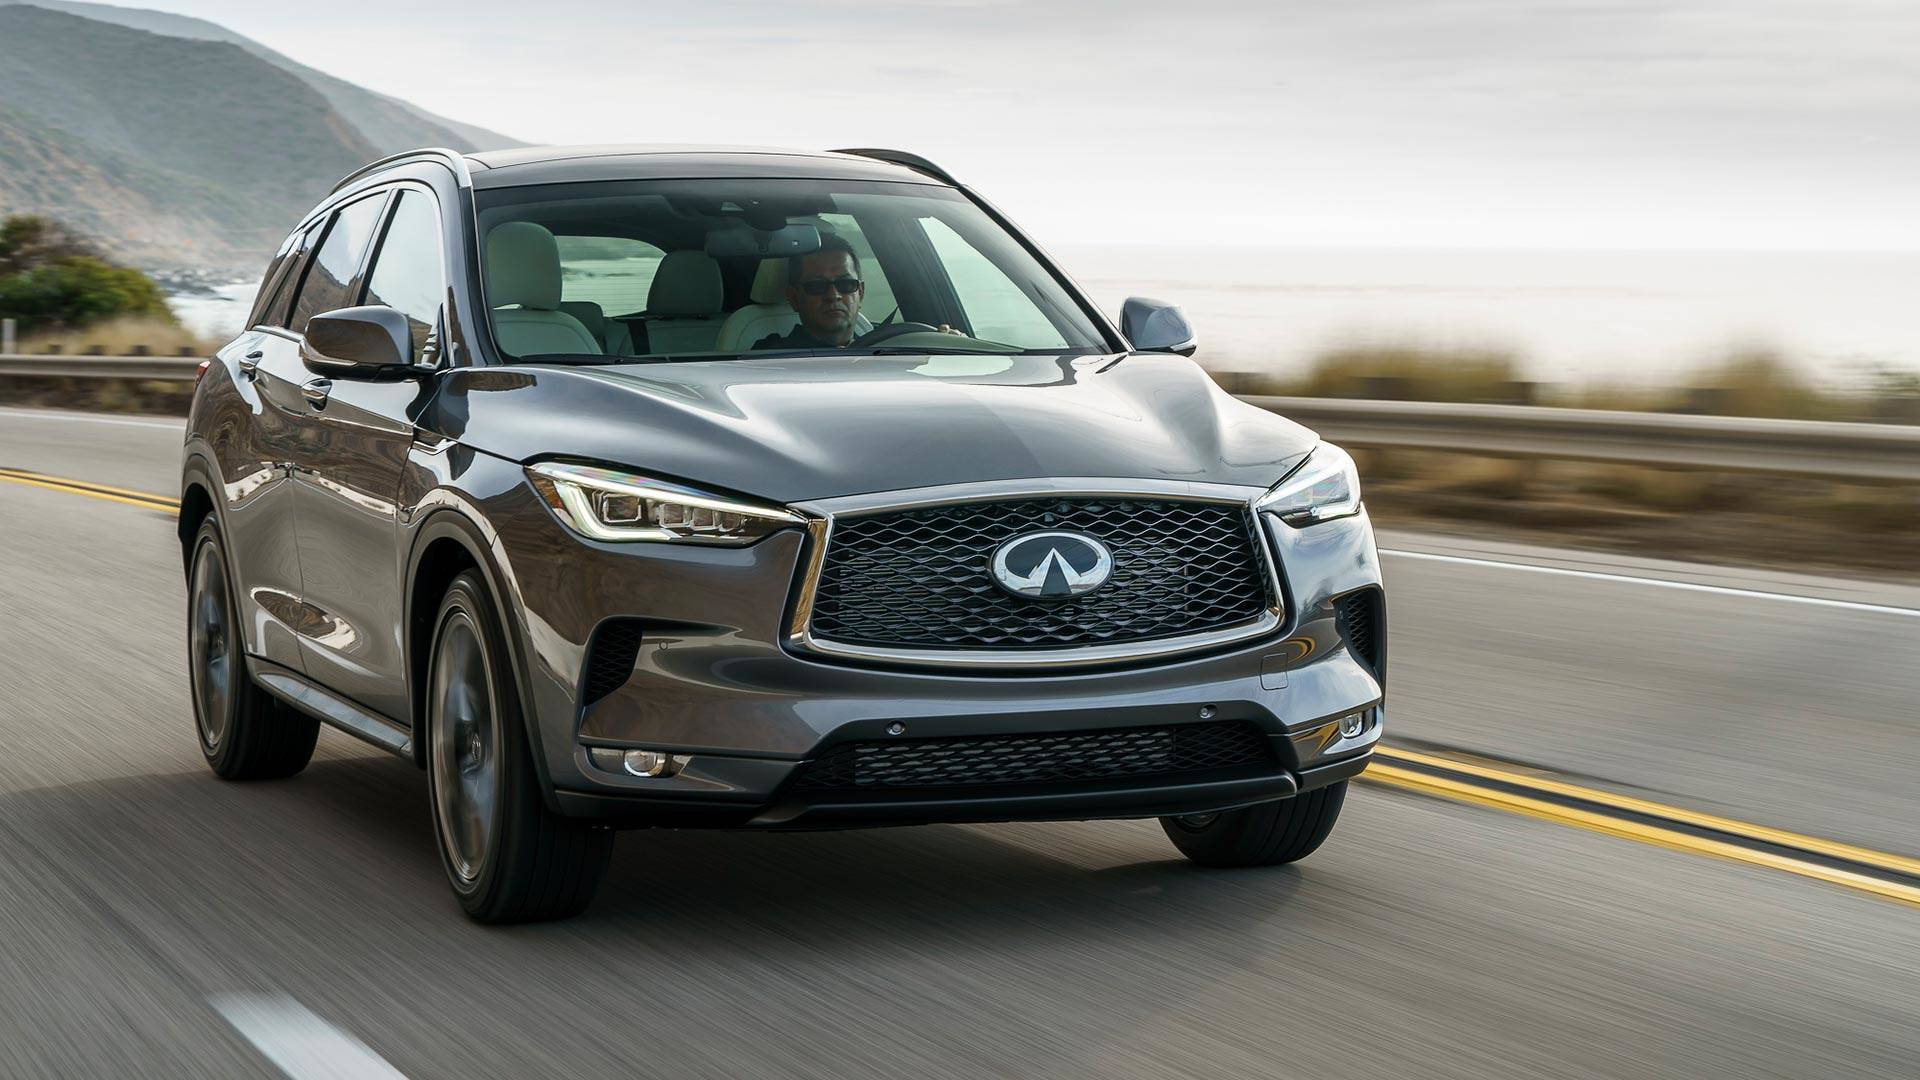 car awd infinity reviews infiniti original review suvs photo s and driver test